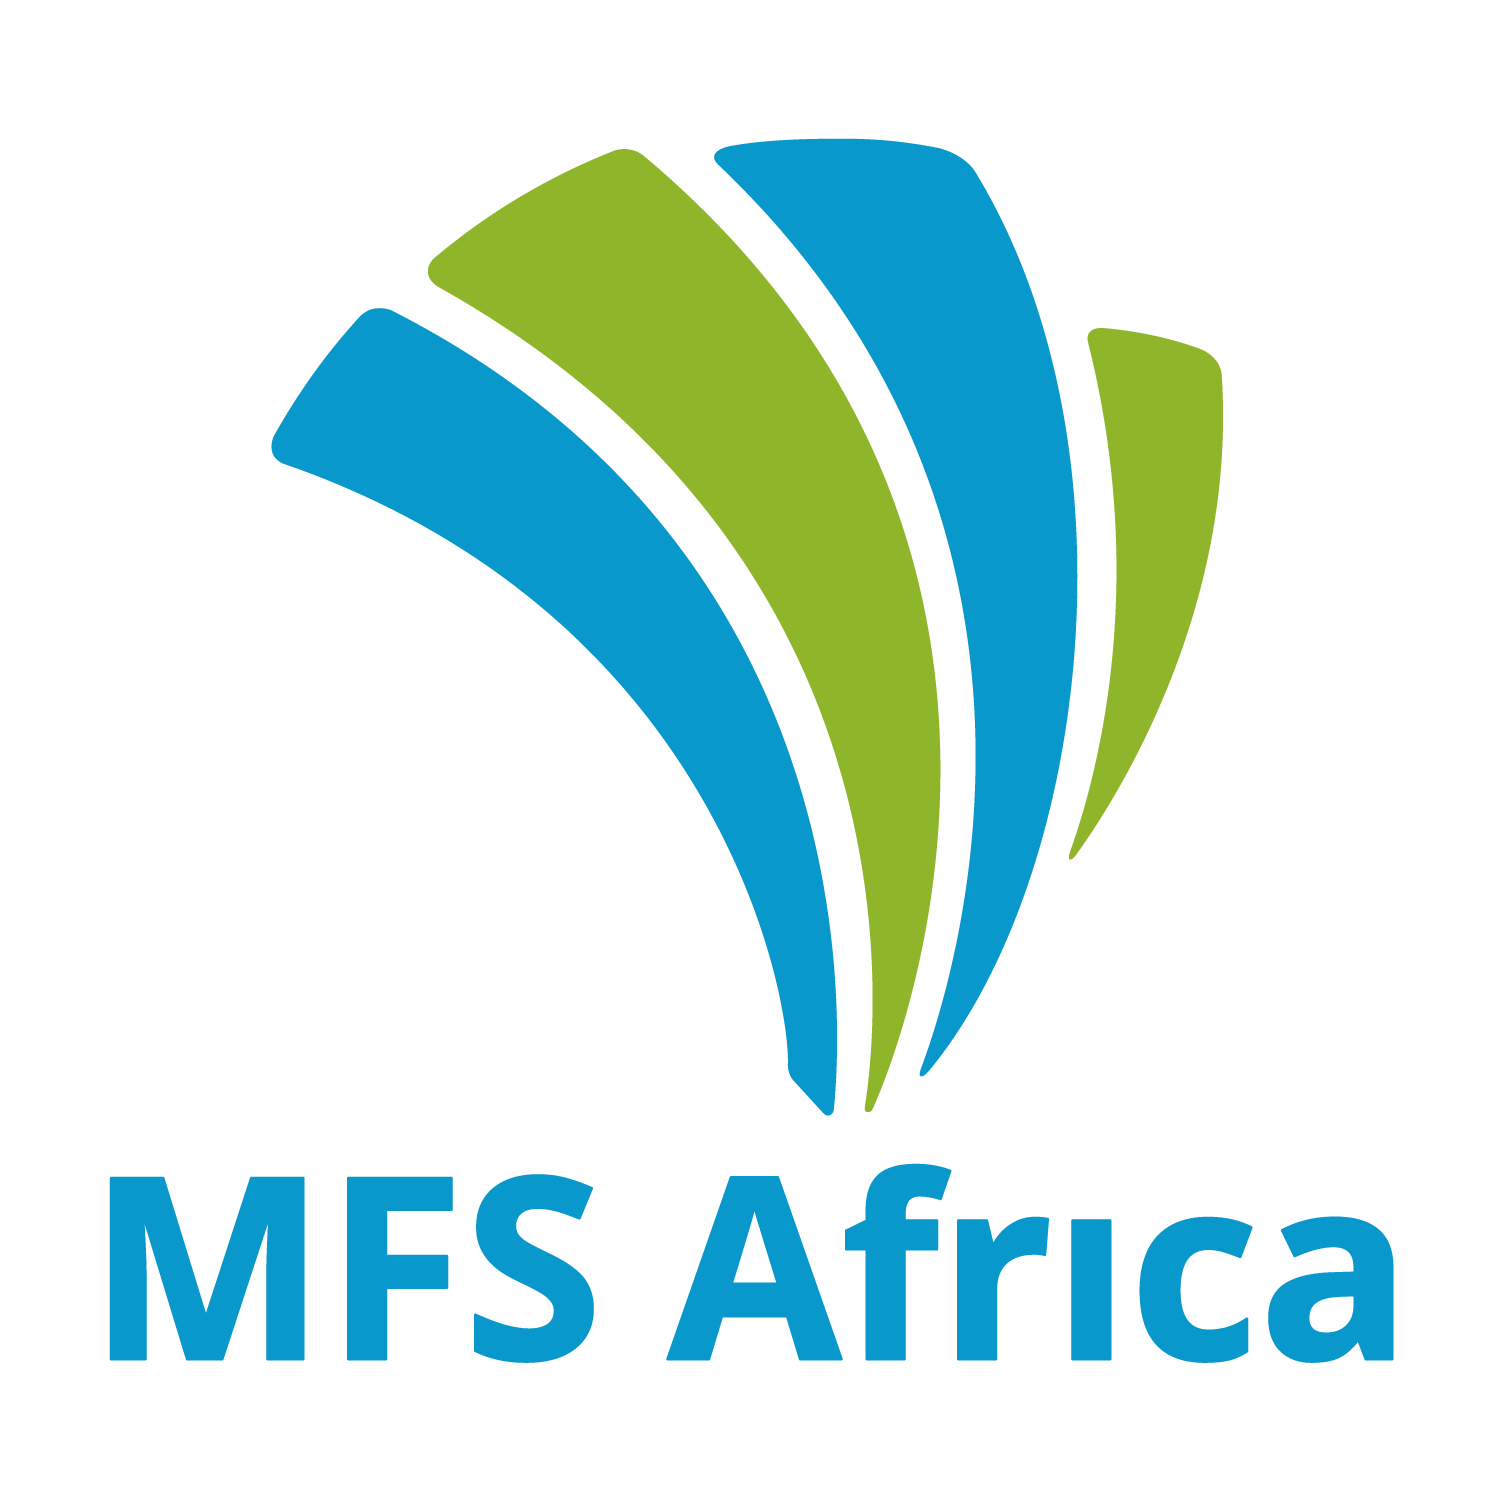 MFS Africa Connects 120 million Mobile Wallets in Sub-Saharan Africa